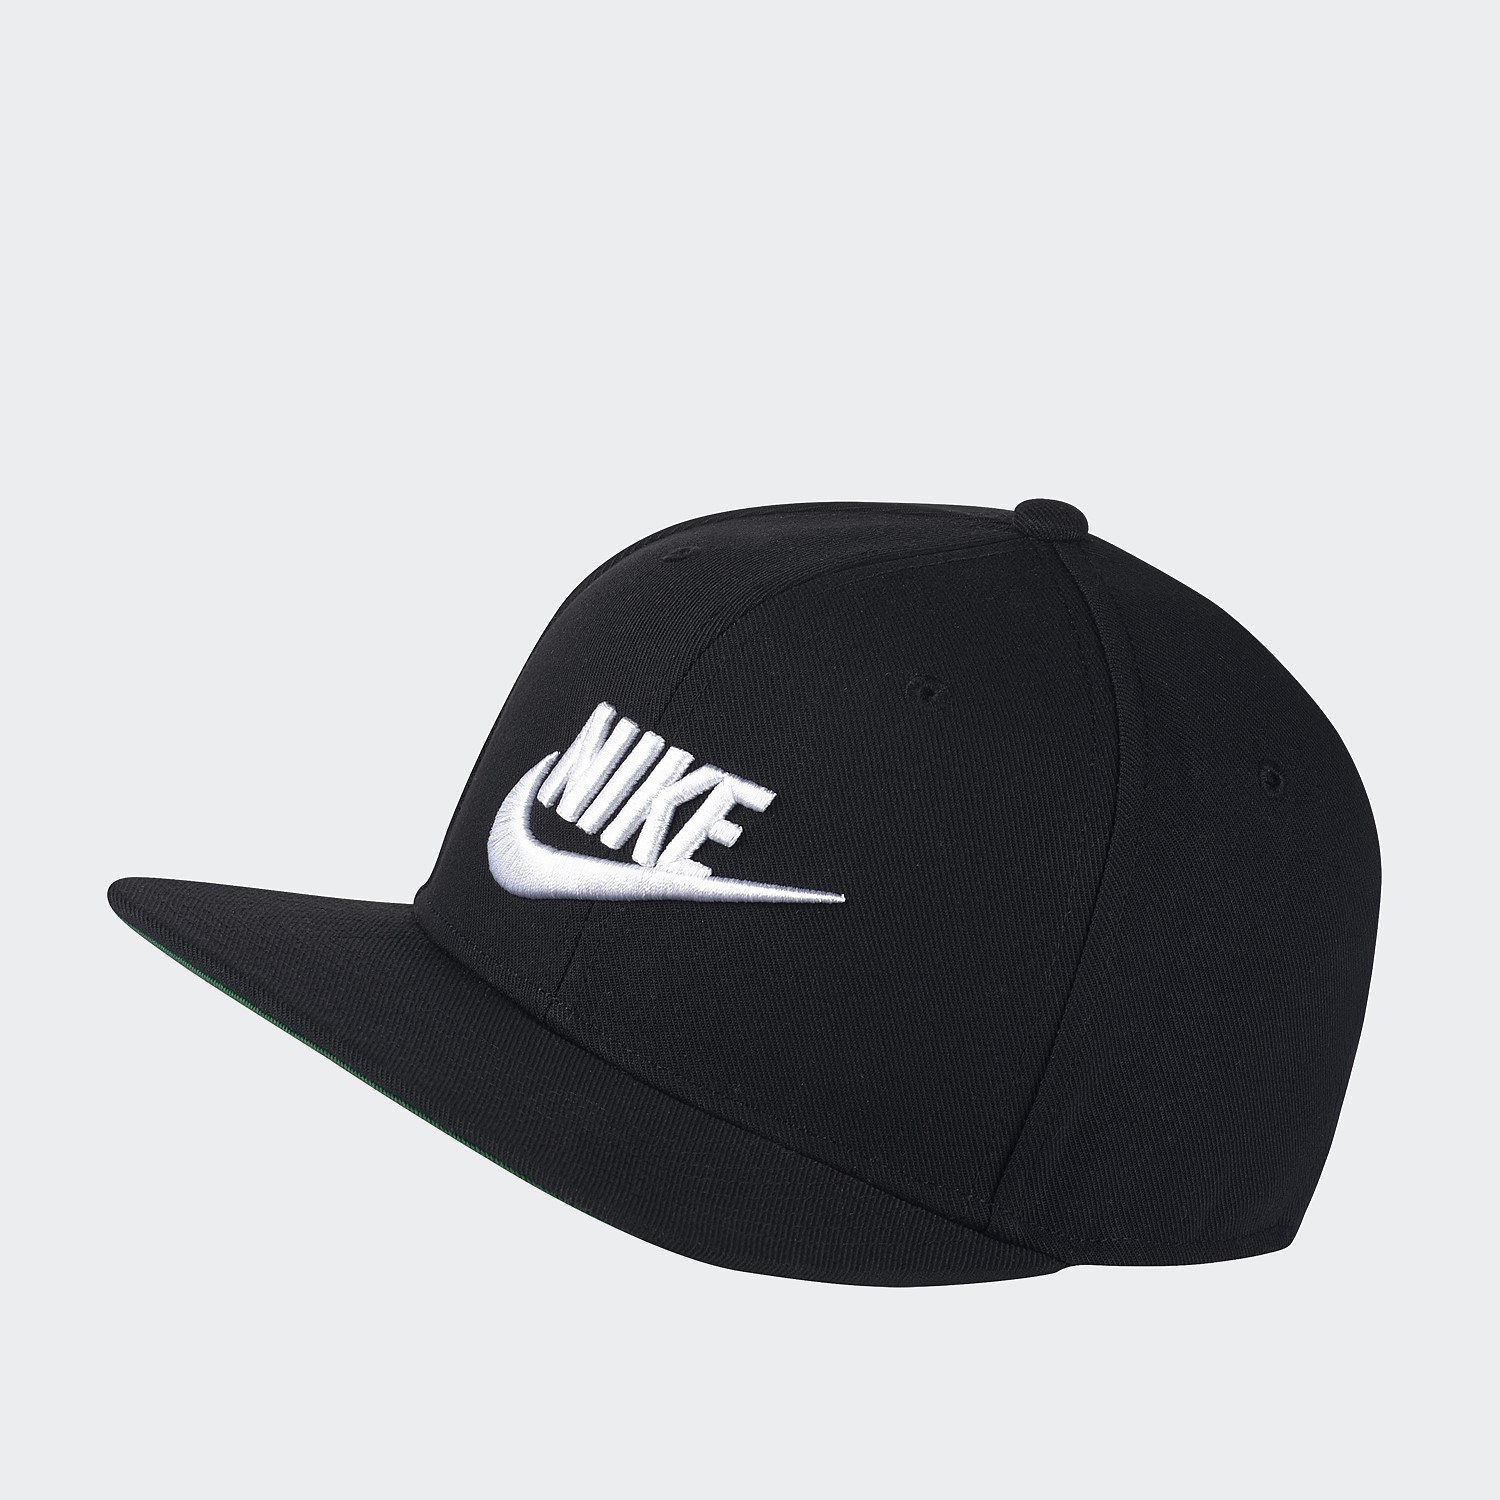 new specials super cute cheapest Nike | Shop Nike Training and Lifestyle Clothing, Footwear ...